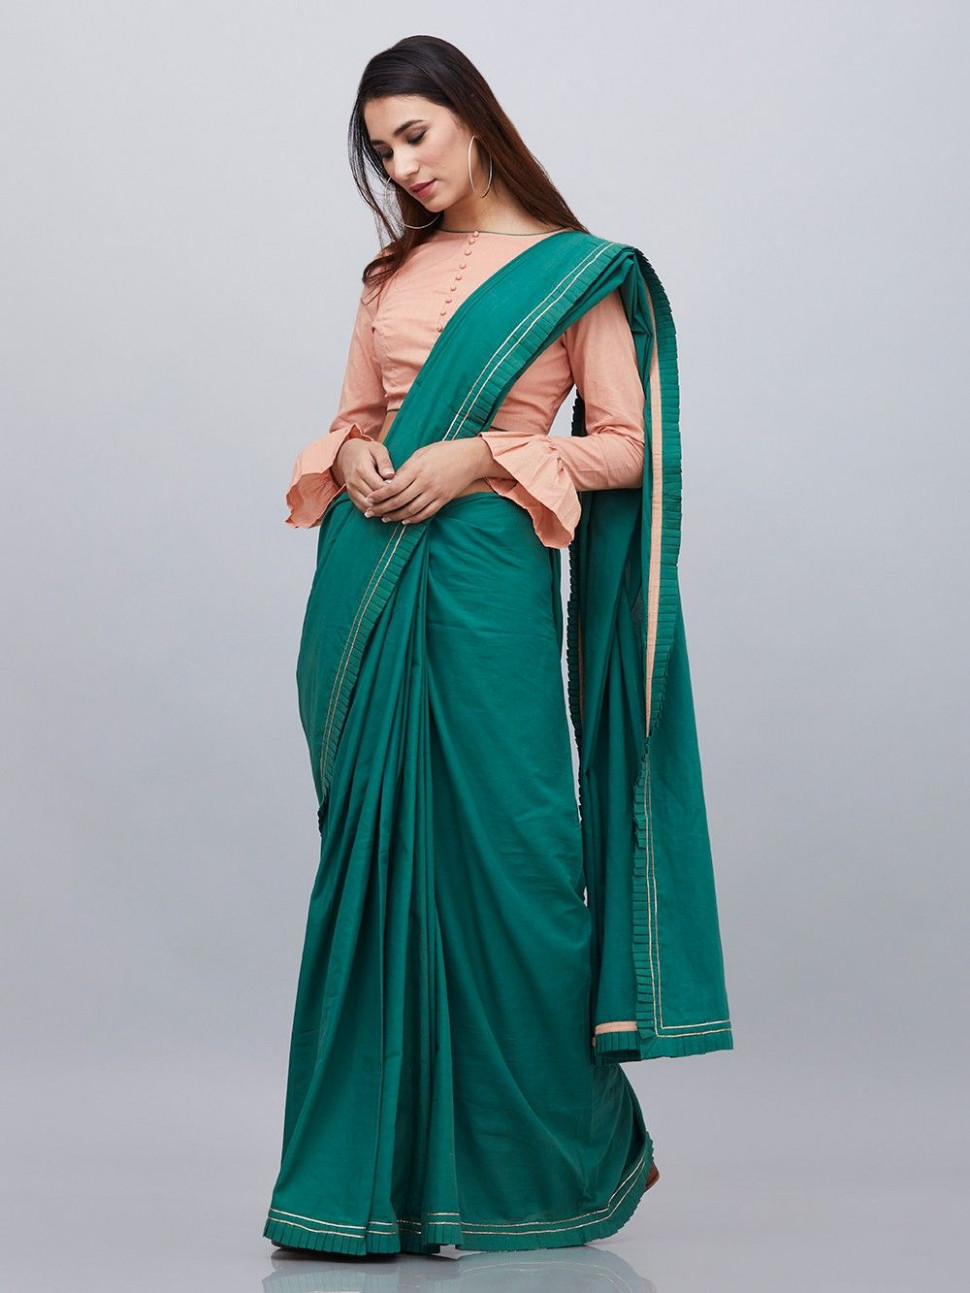 Buy Green Cotton Saree with Peach Blouse - Set of 2 online